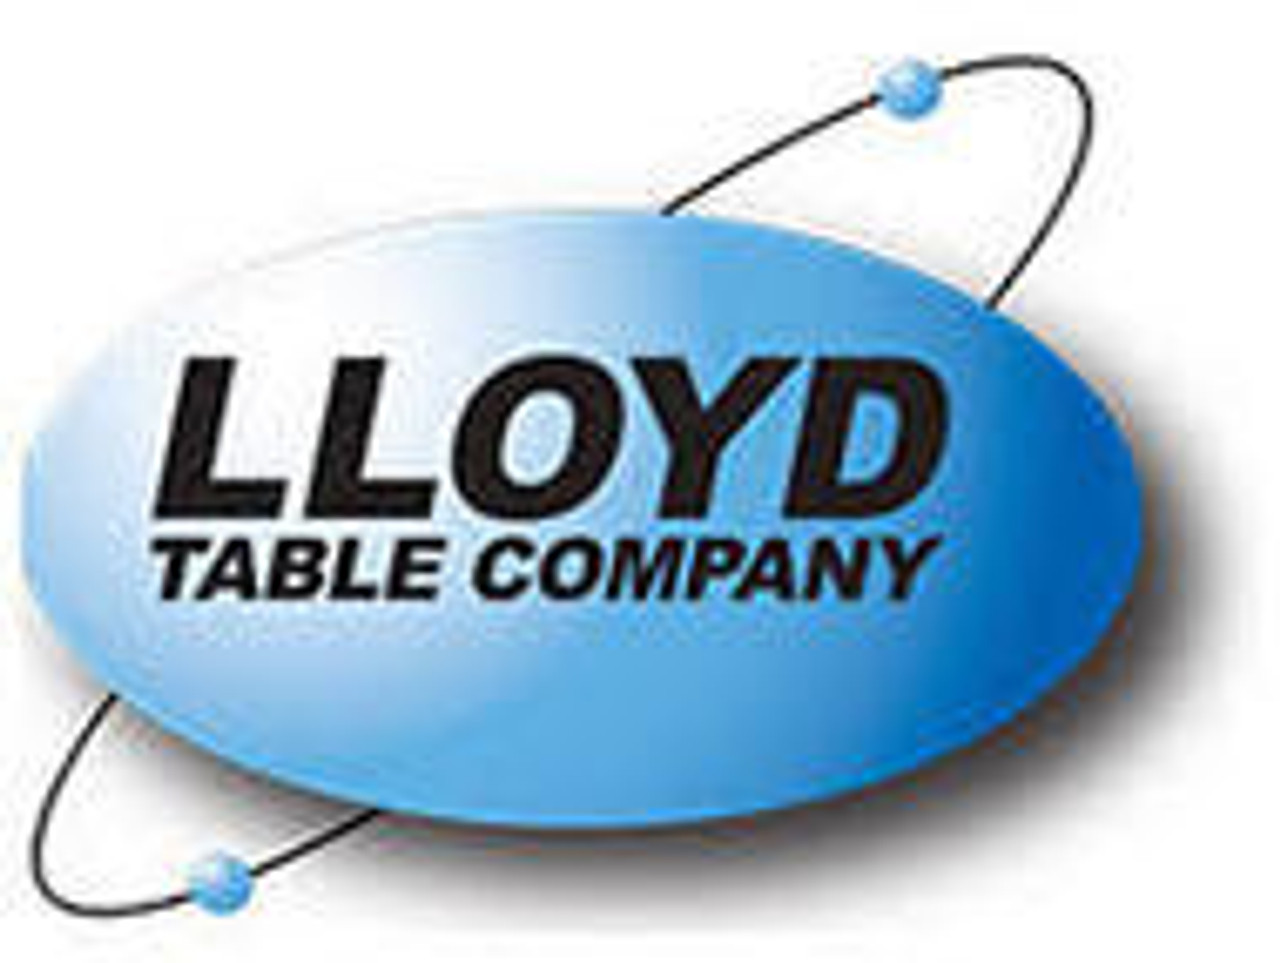 Lloyd Chiropractic Table Manuals